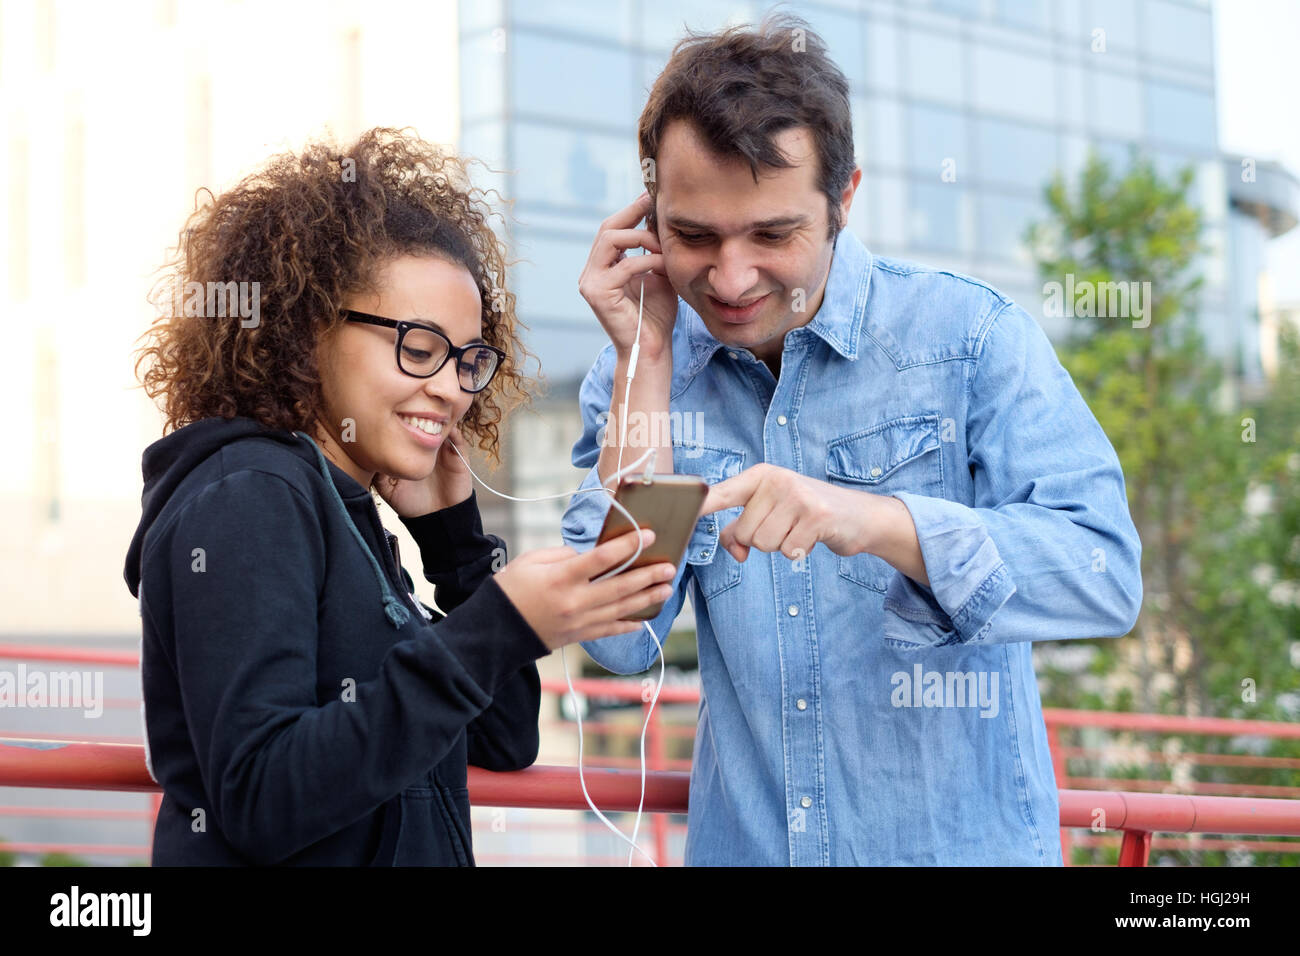 Two friends using mobile phone and listening to music in the street - Stock Image